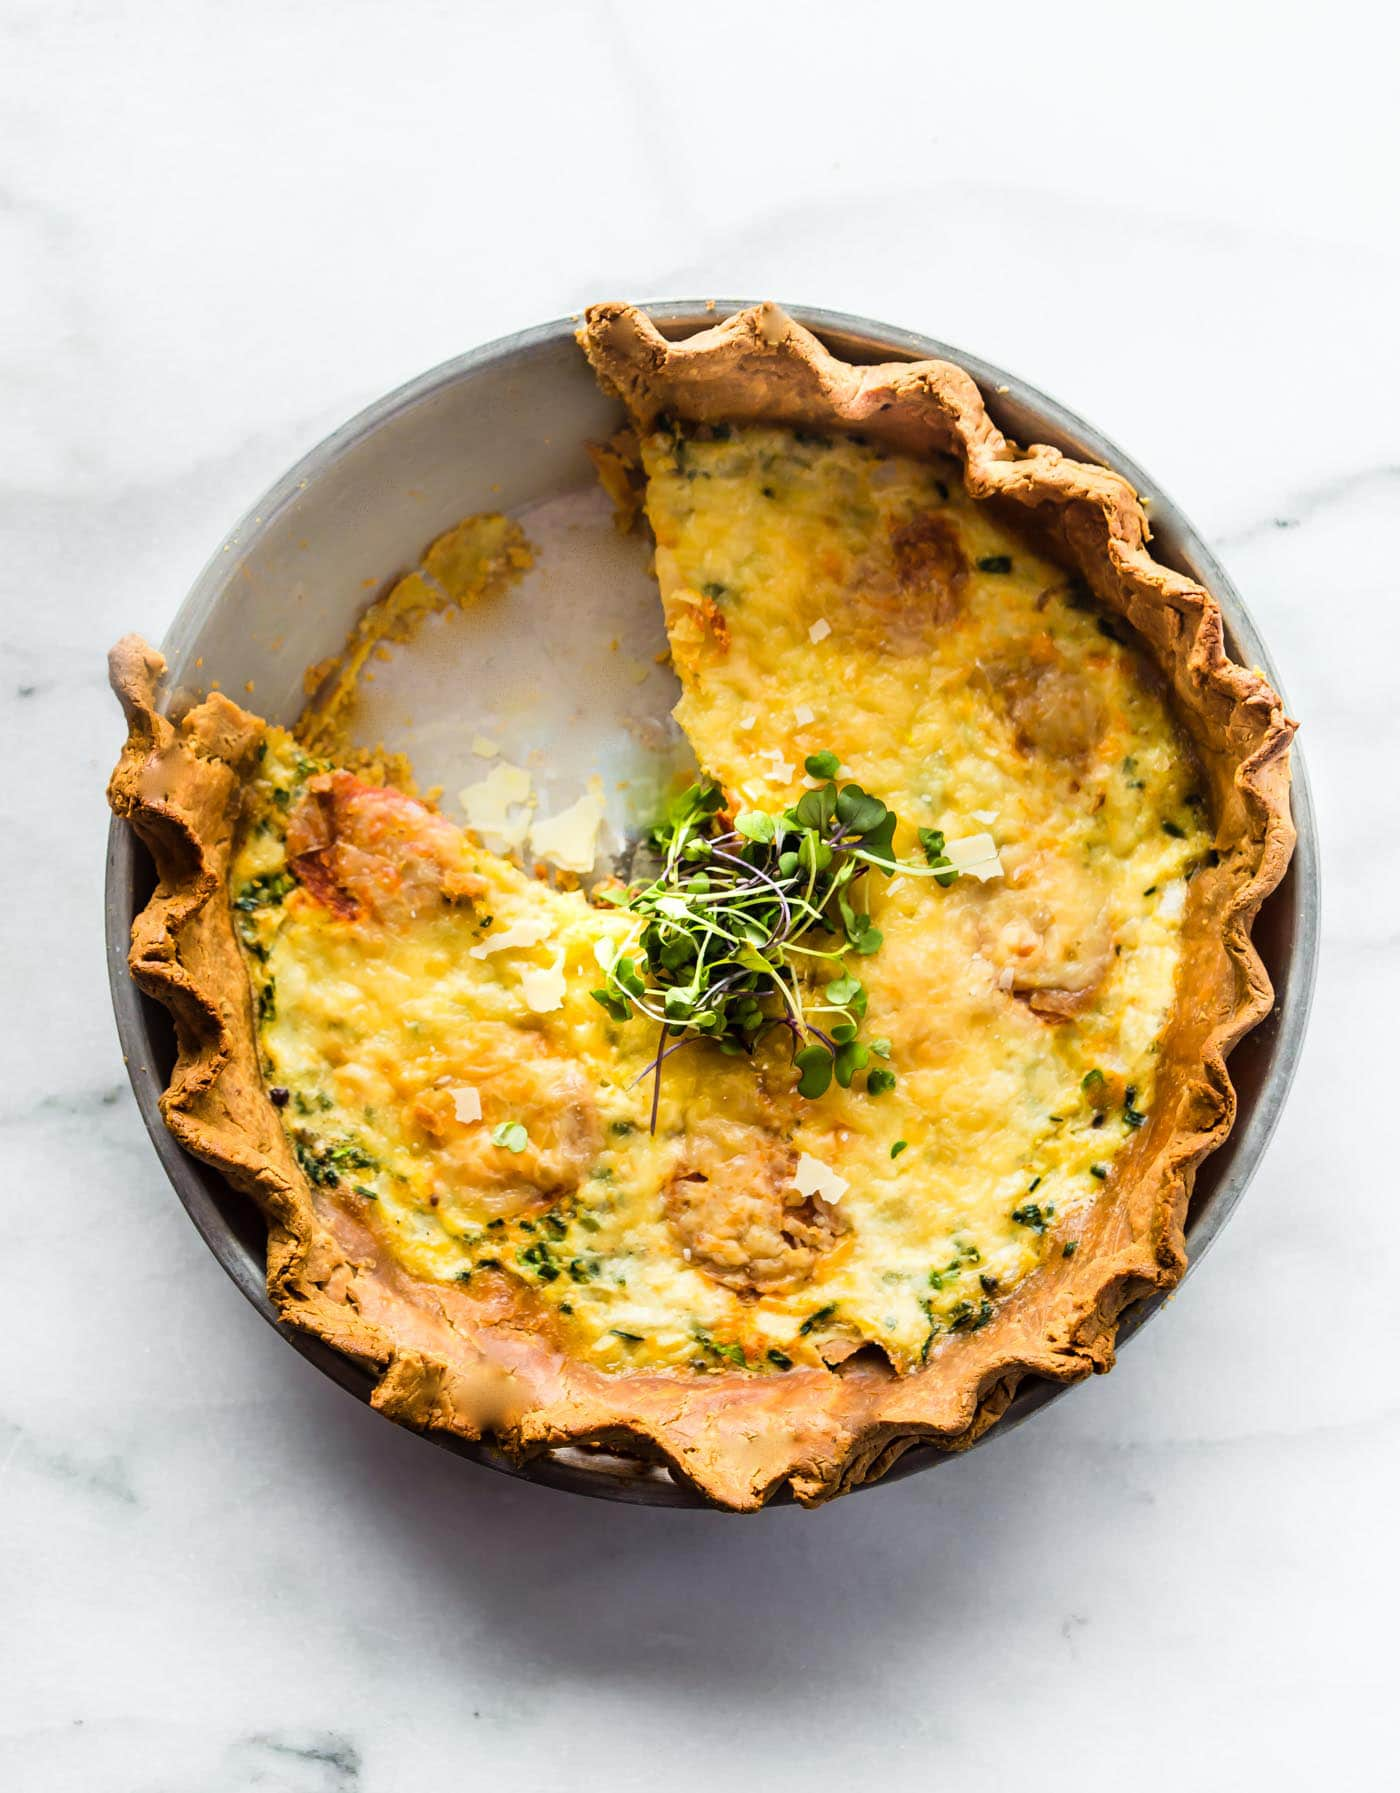 quiche baked into a homemade, 3 ingredient gluten free pie crust